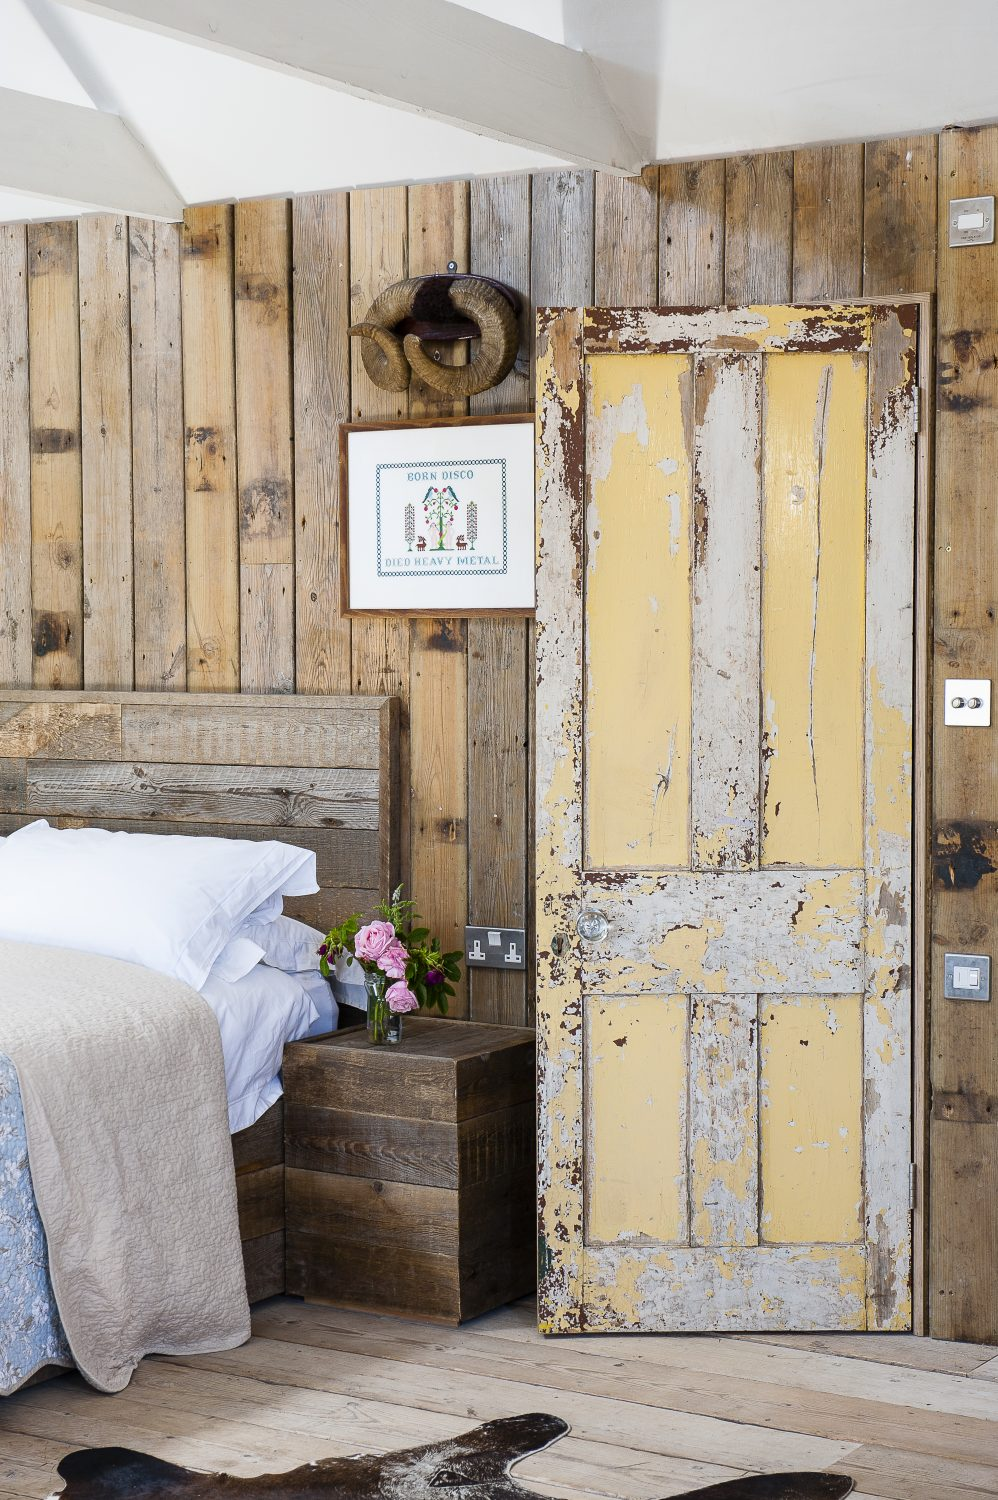 Crisp white ceilings and floral bedlinen are the perfect foil for the rustic reclaimed wooden flooring and panelling in one bedroom